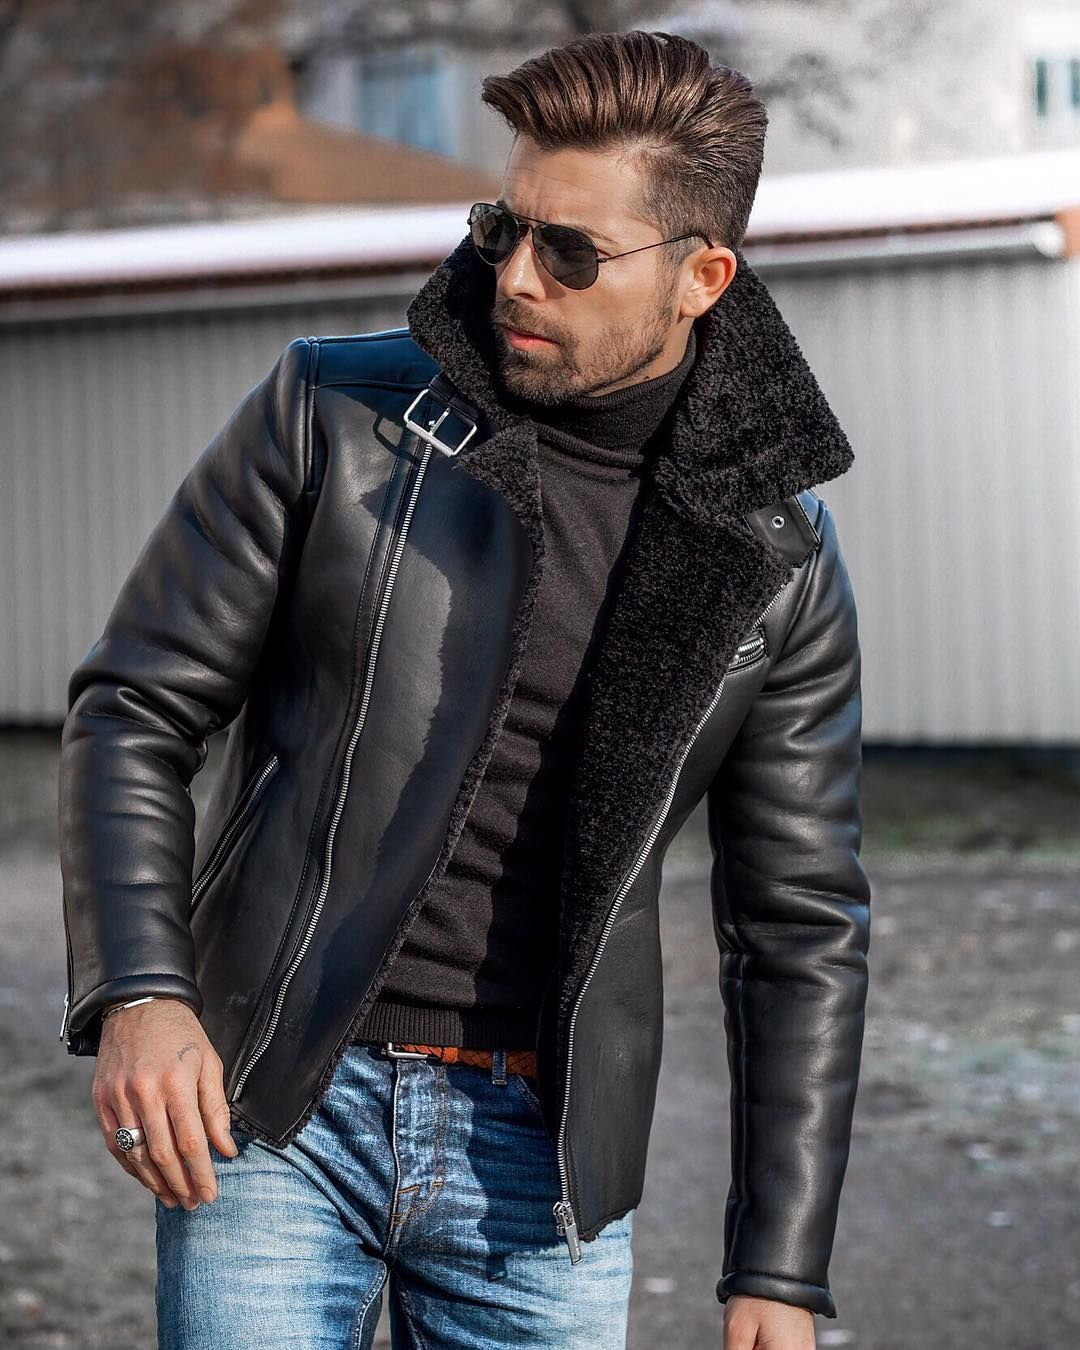 Looks - Leather stylish jackets for boys video